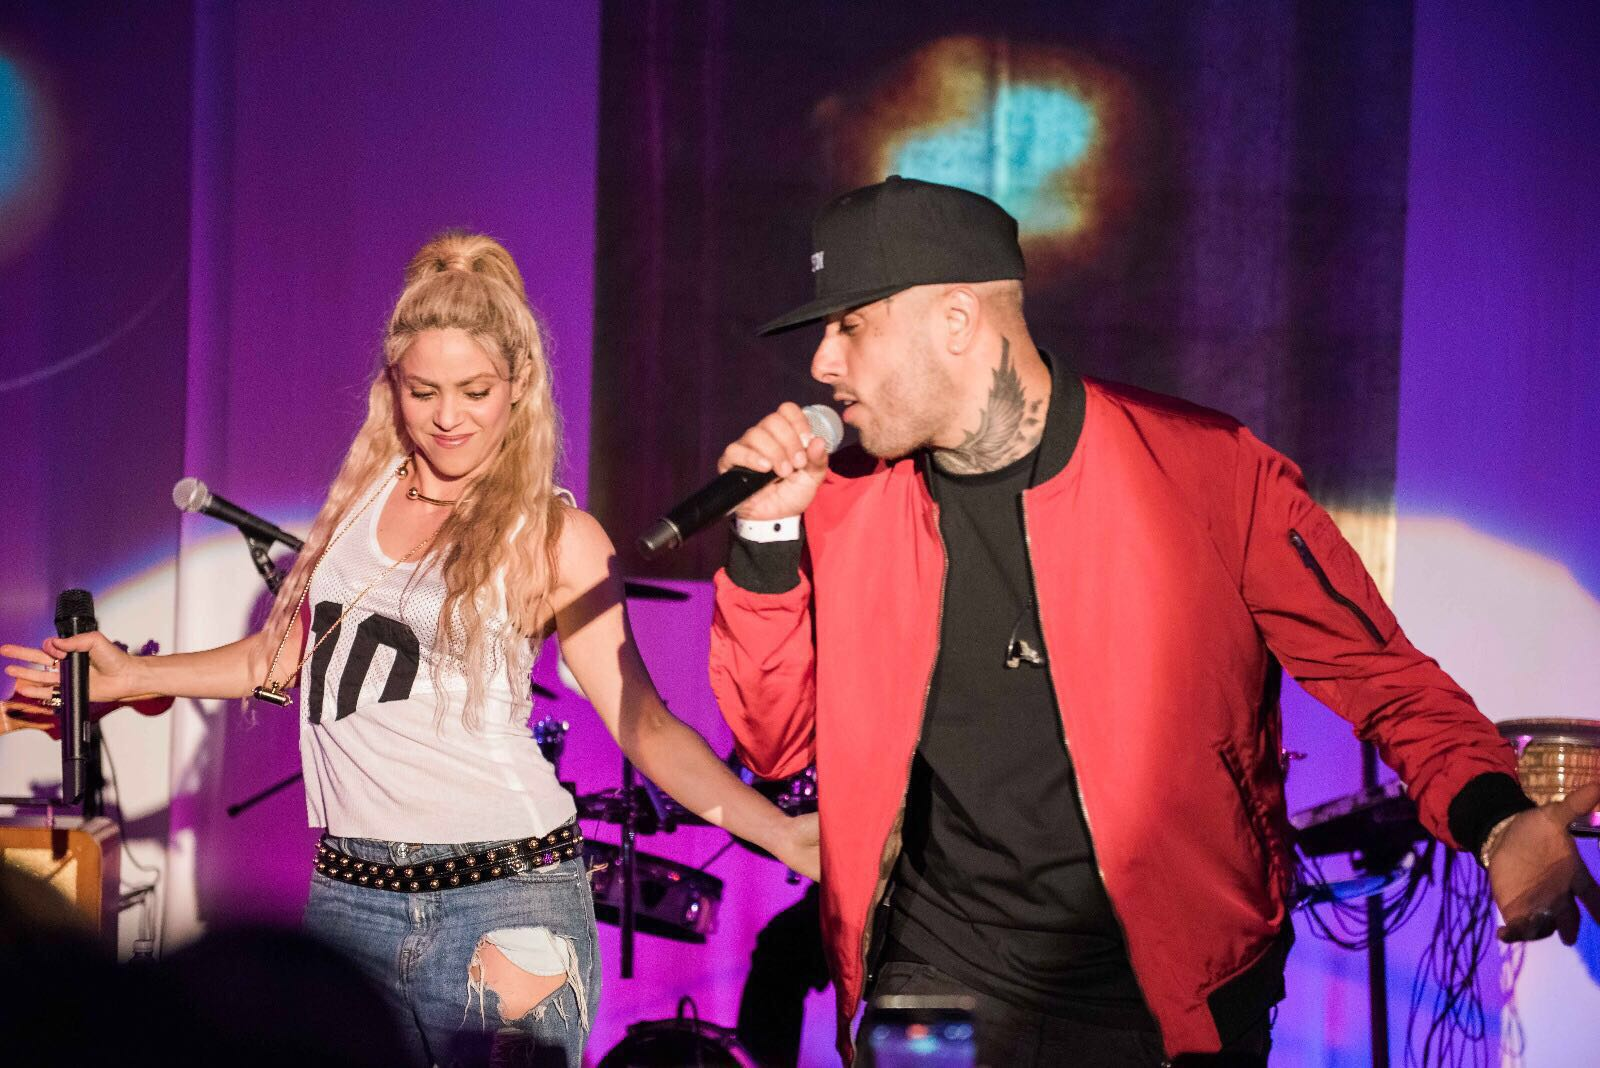 Had a great time onstage with @NickyJamPR and @PrinceRoyce last night at the El Dorado launch. What an honor! Shak https://t.co/uK8T10E6ui